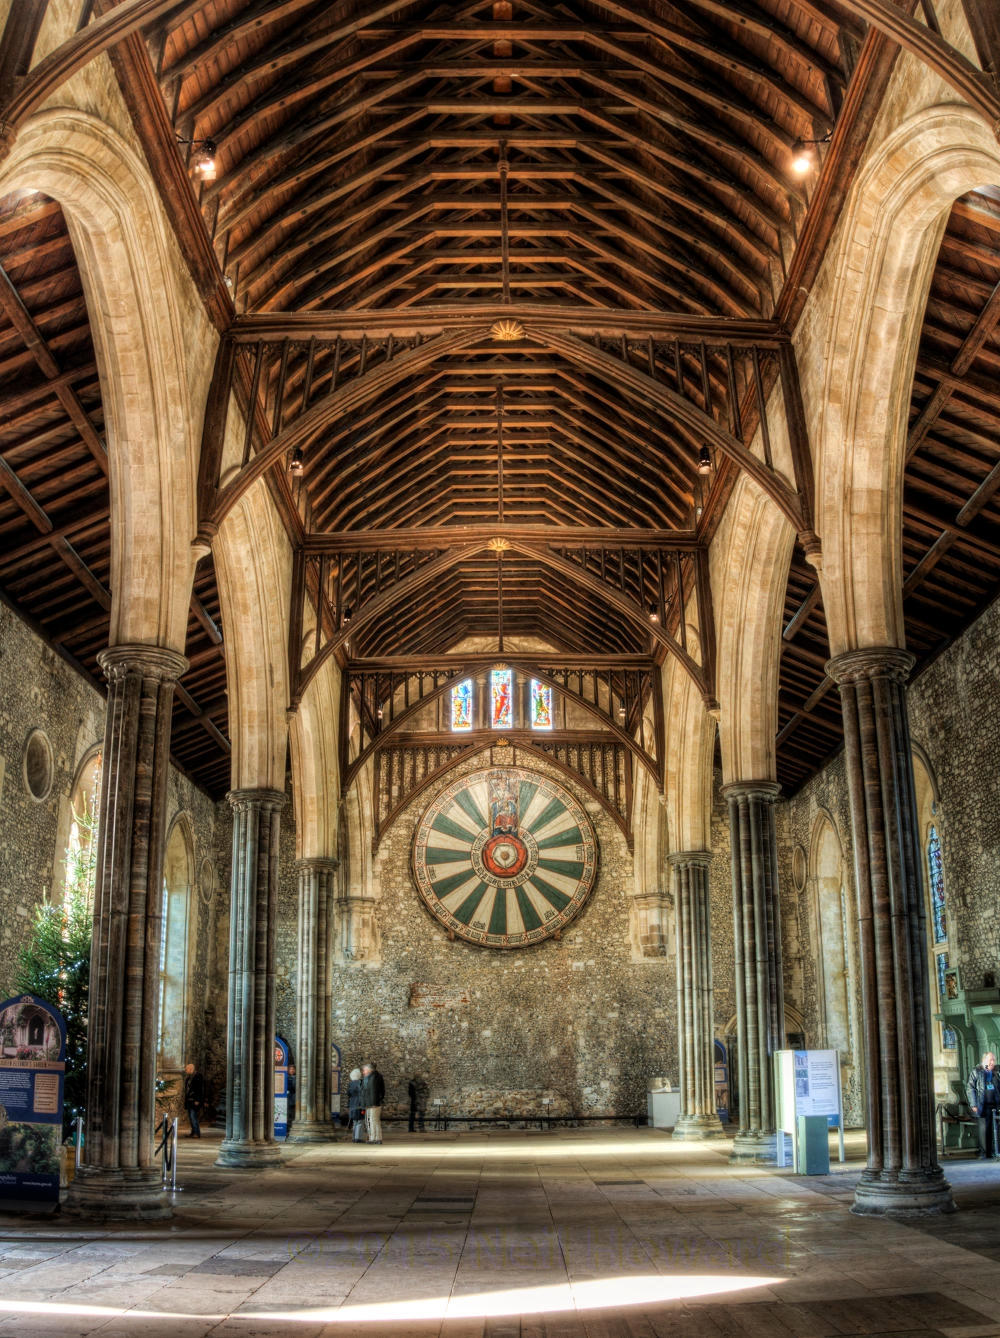 Great Hall, Winchester. Credit Neil Howard, flickr